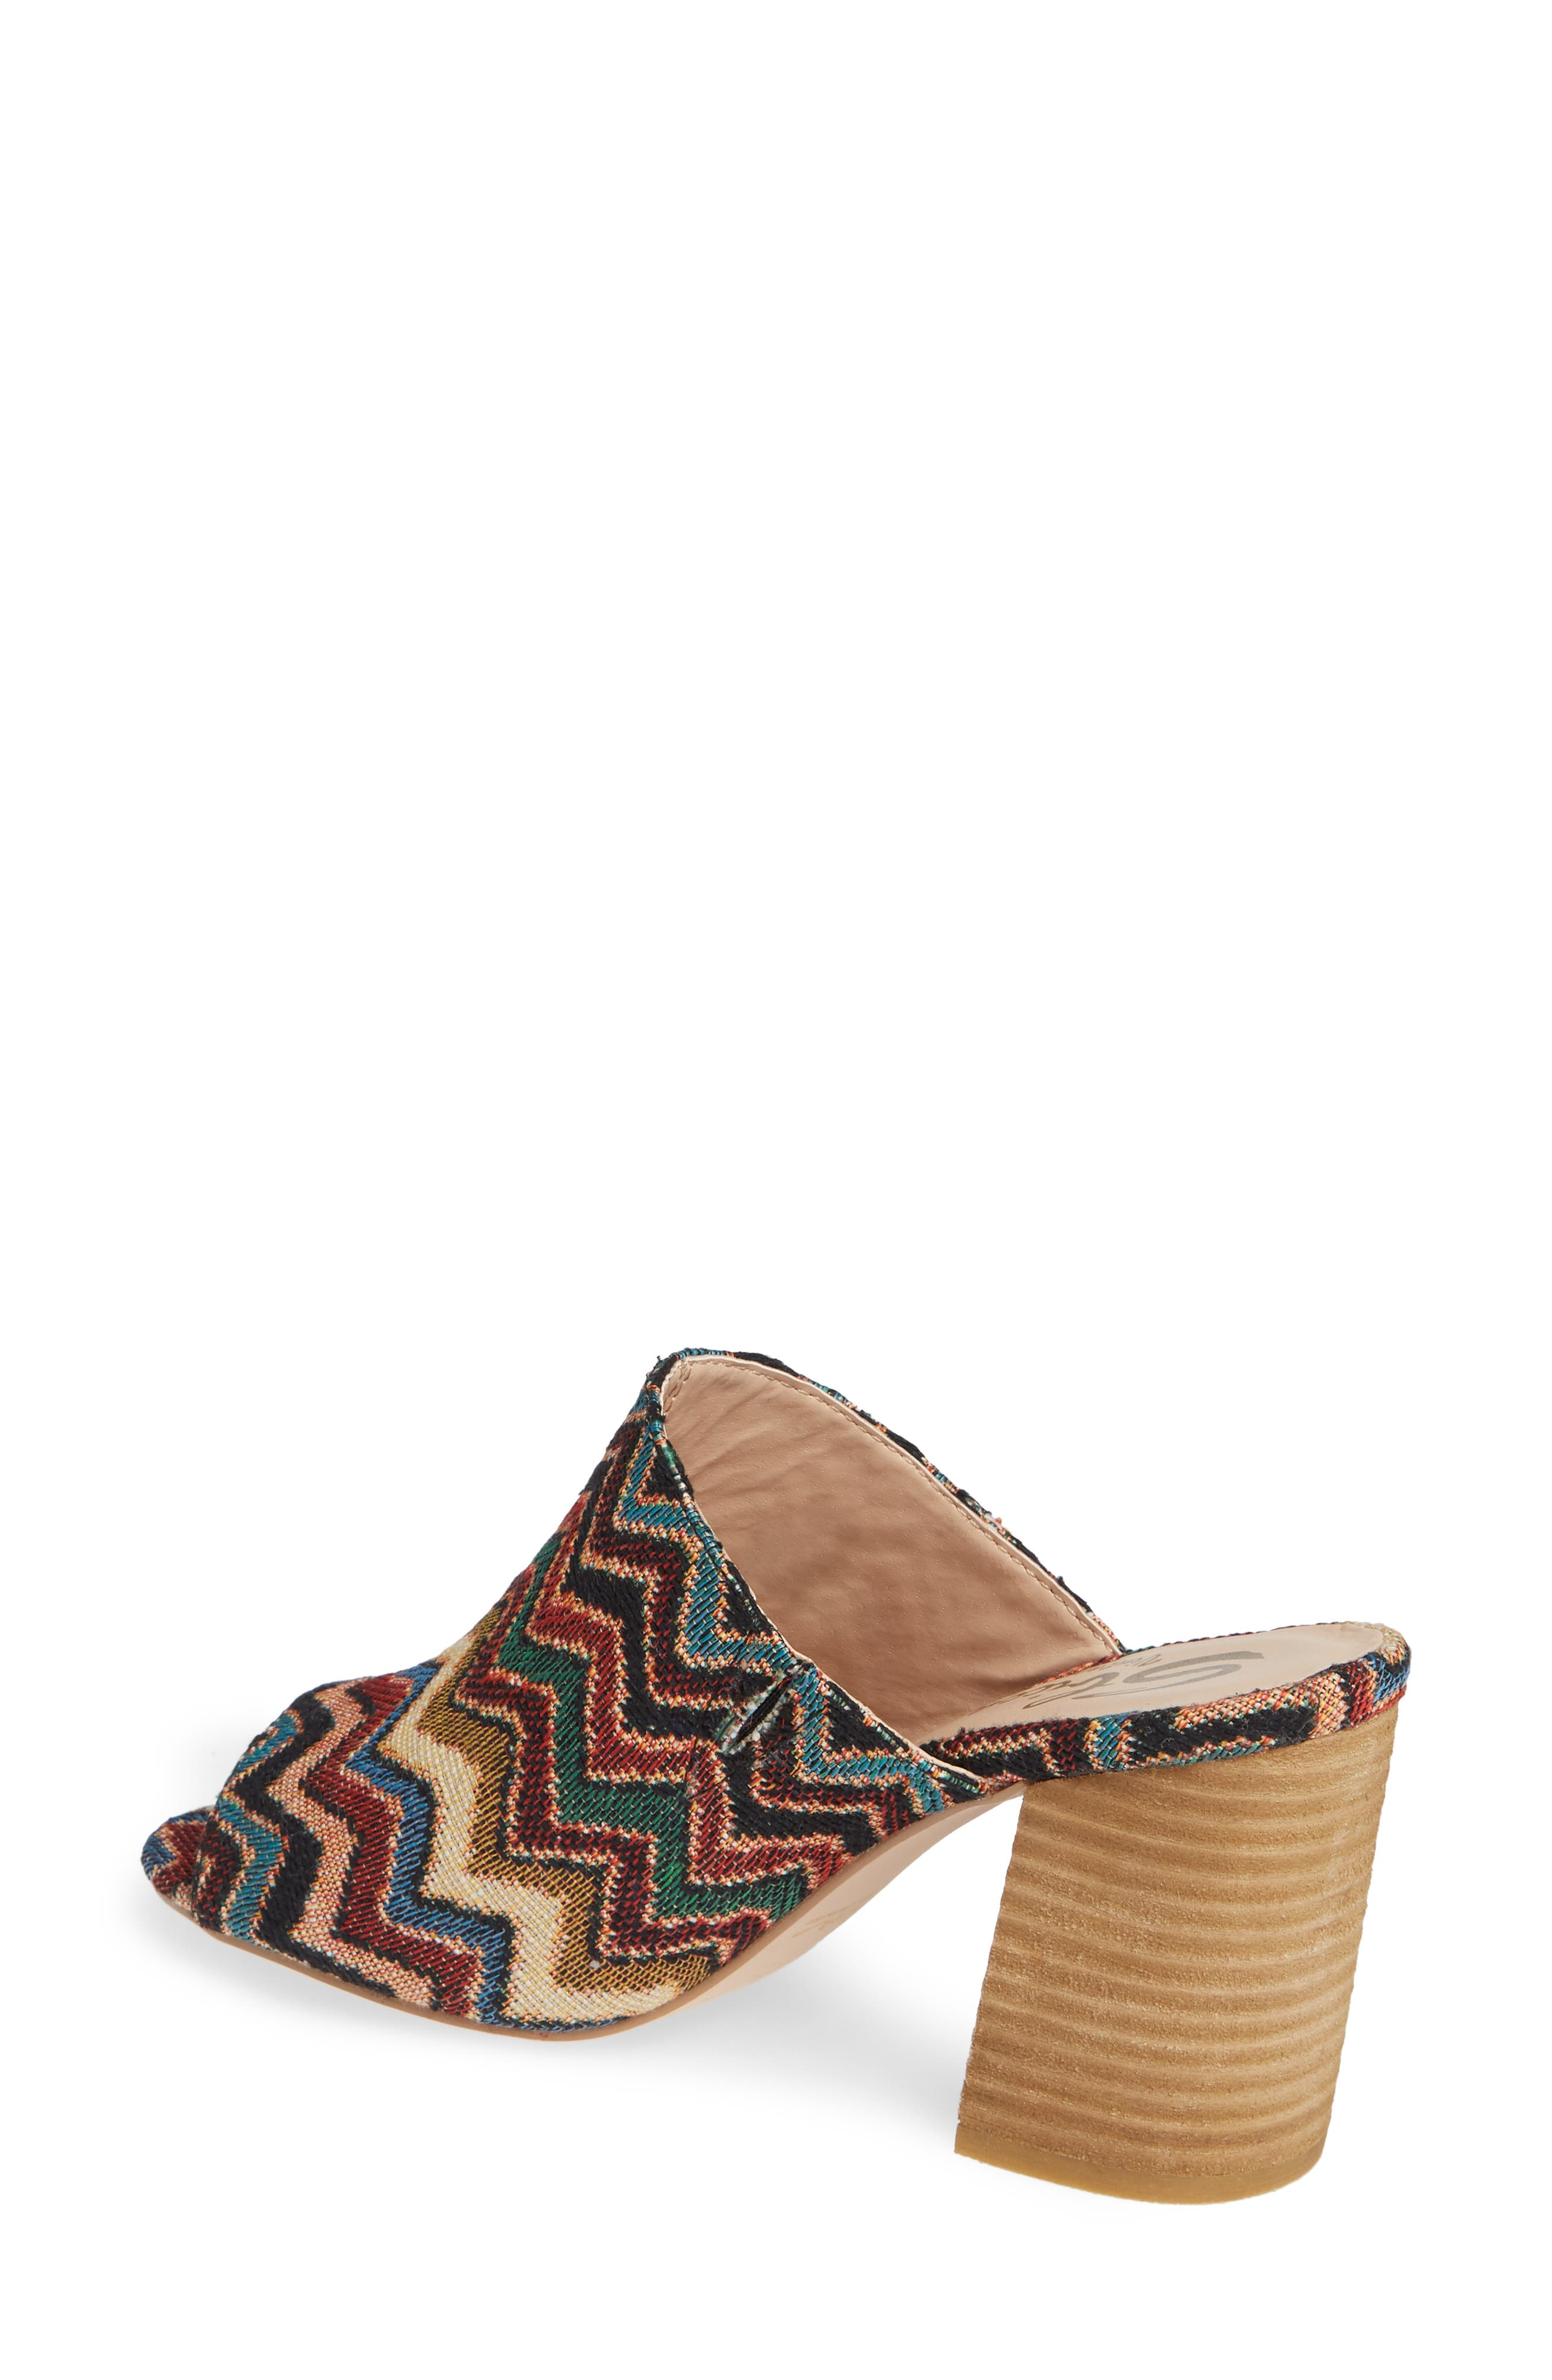 Helena Sandal,                             Alternate thumbnail 2, color,                             MULTICOLOR FABRIC